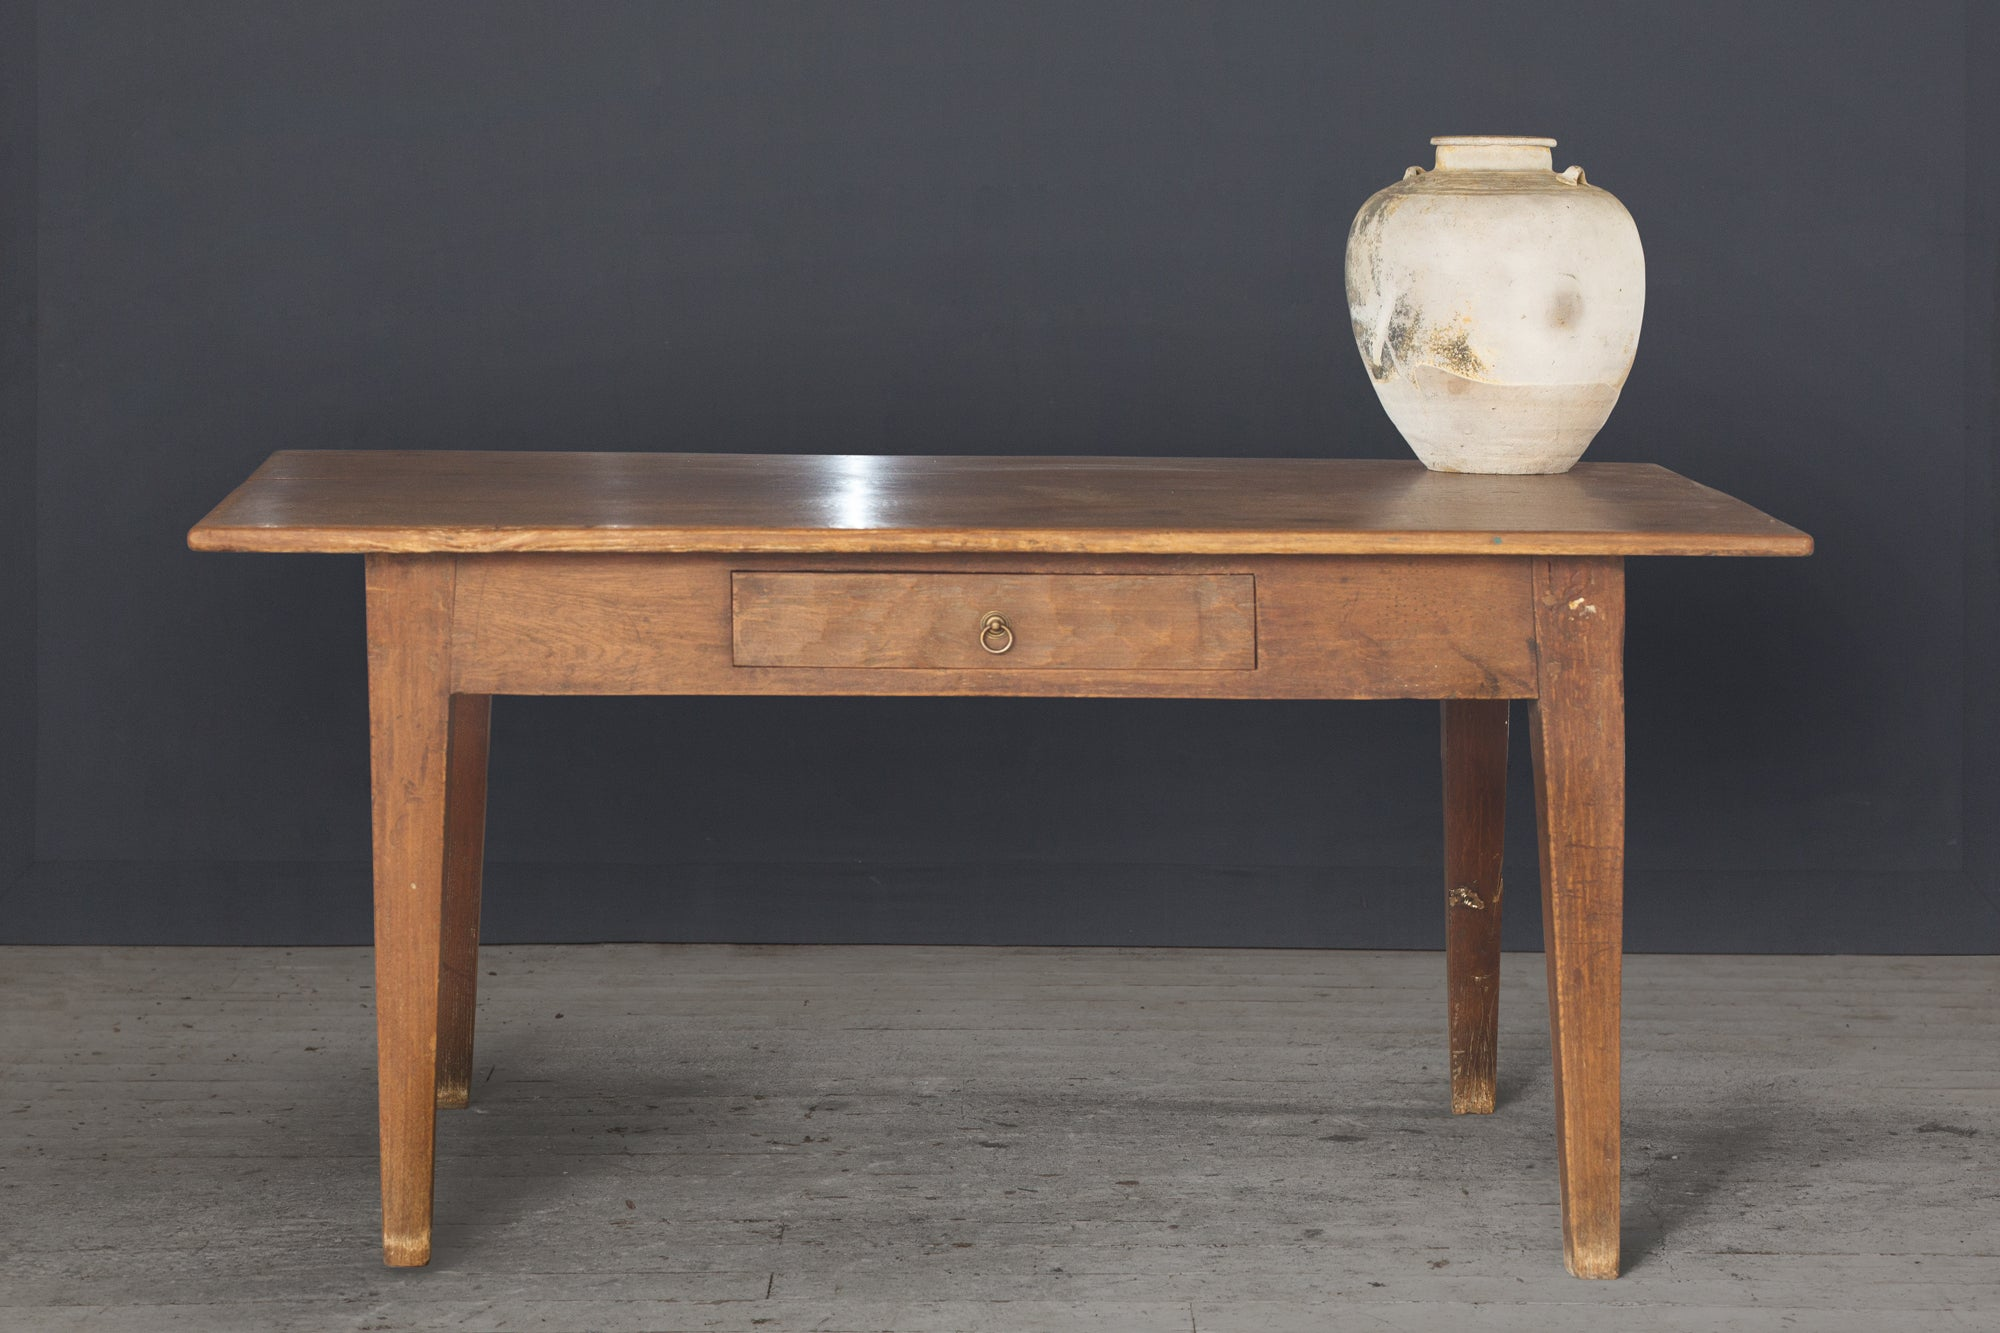 19th Century Dutch Colonial Teak Table